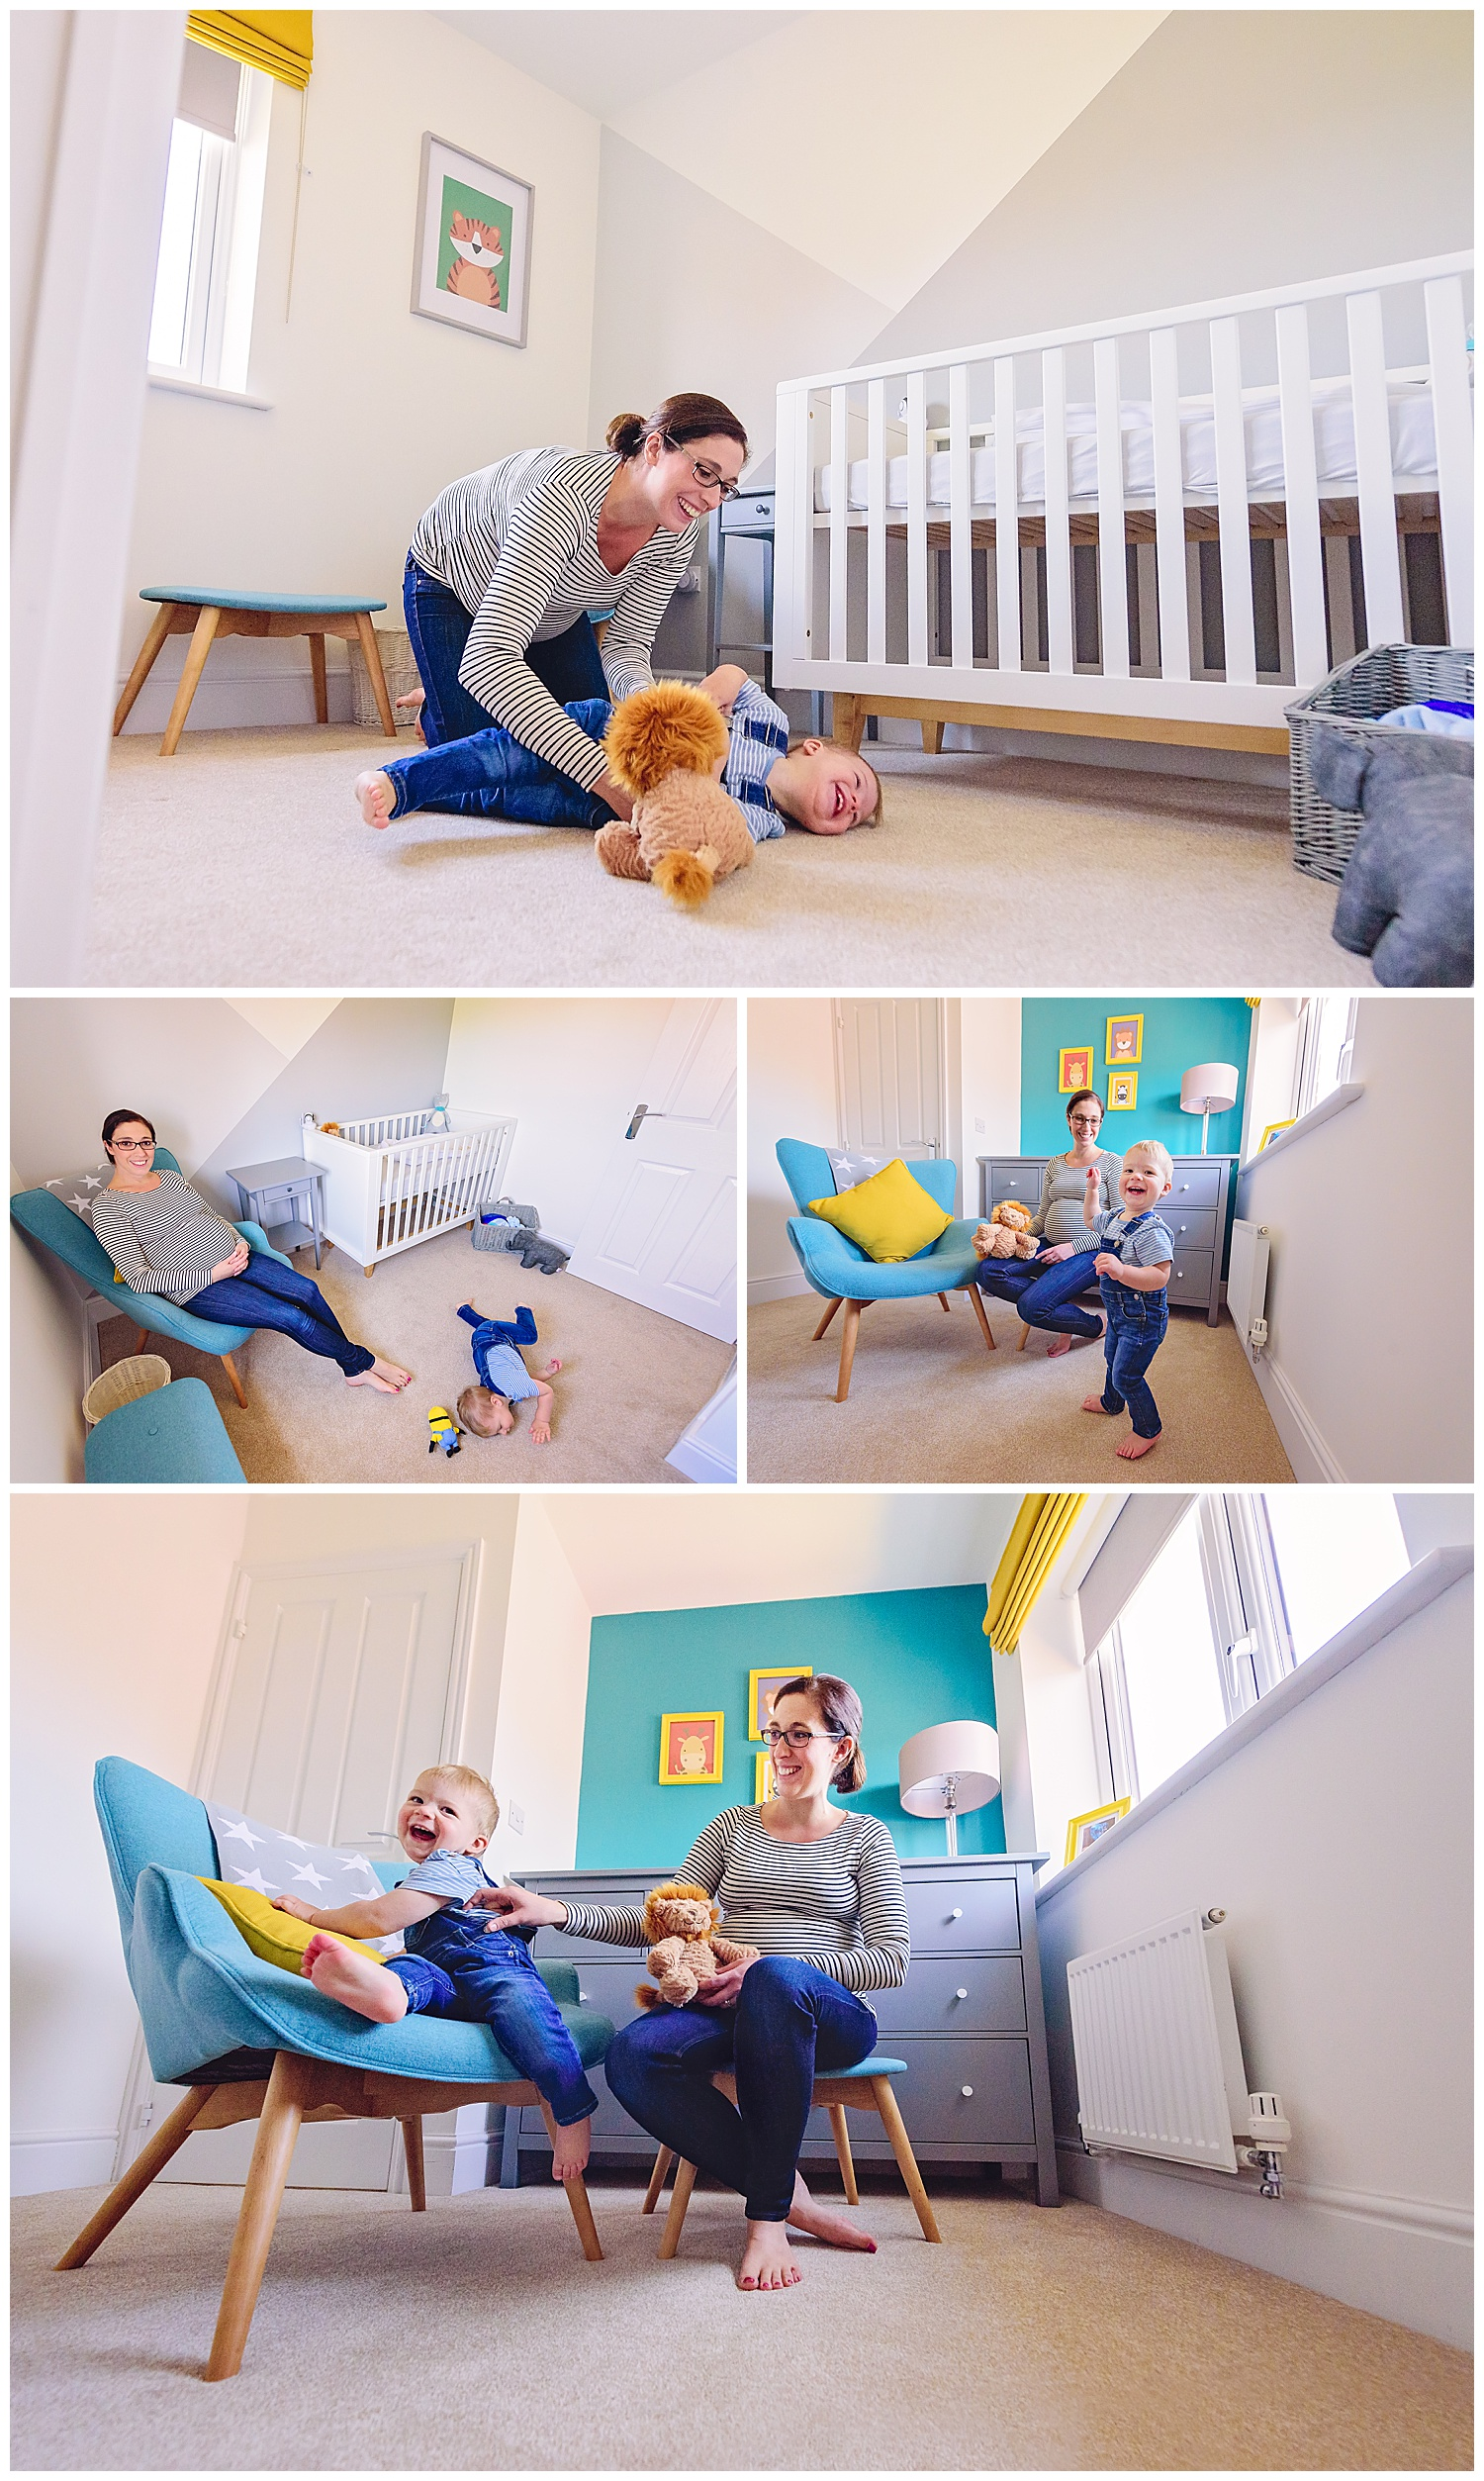 Montage of images of pregnant mother and toddler son playing in new baby's nursery